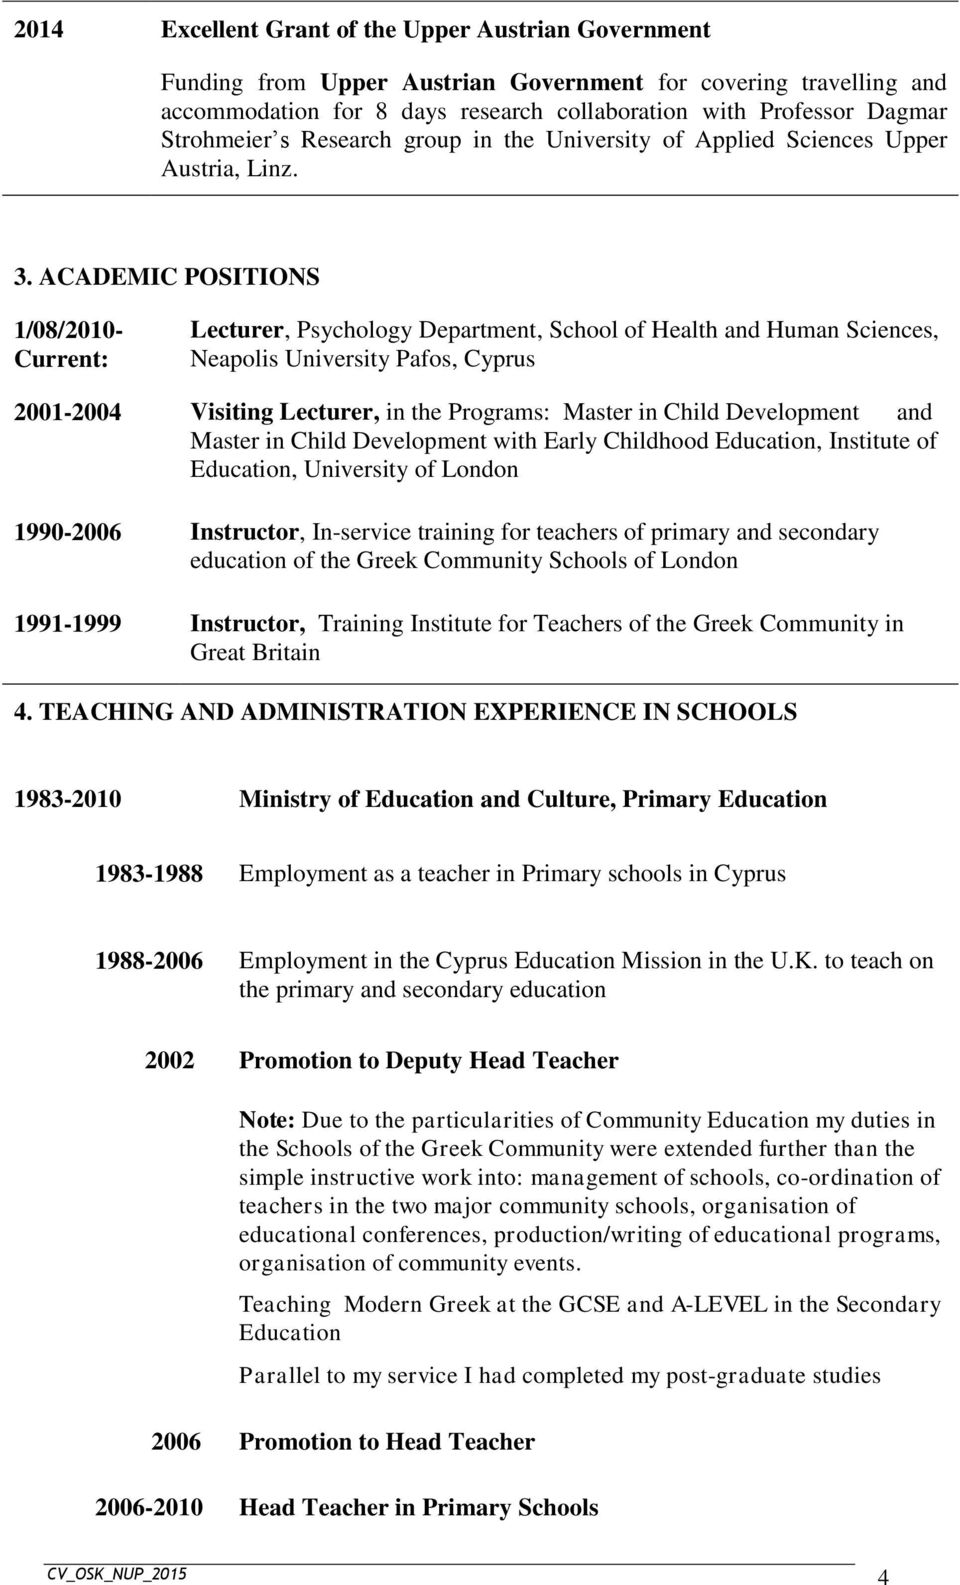 ACADEMIC POSITIONS 1/08/2010- Current: Lecturer, Psychology Department, School of Health and Human Sciences, Neapolis University Pafos, Cyprus 2001-2004 Visiting Lecturer, in the Programs: Master in